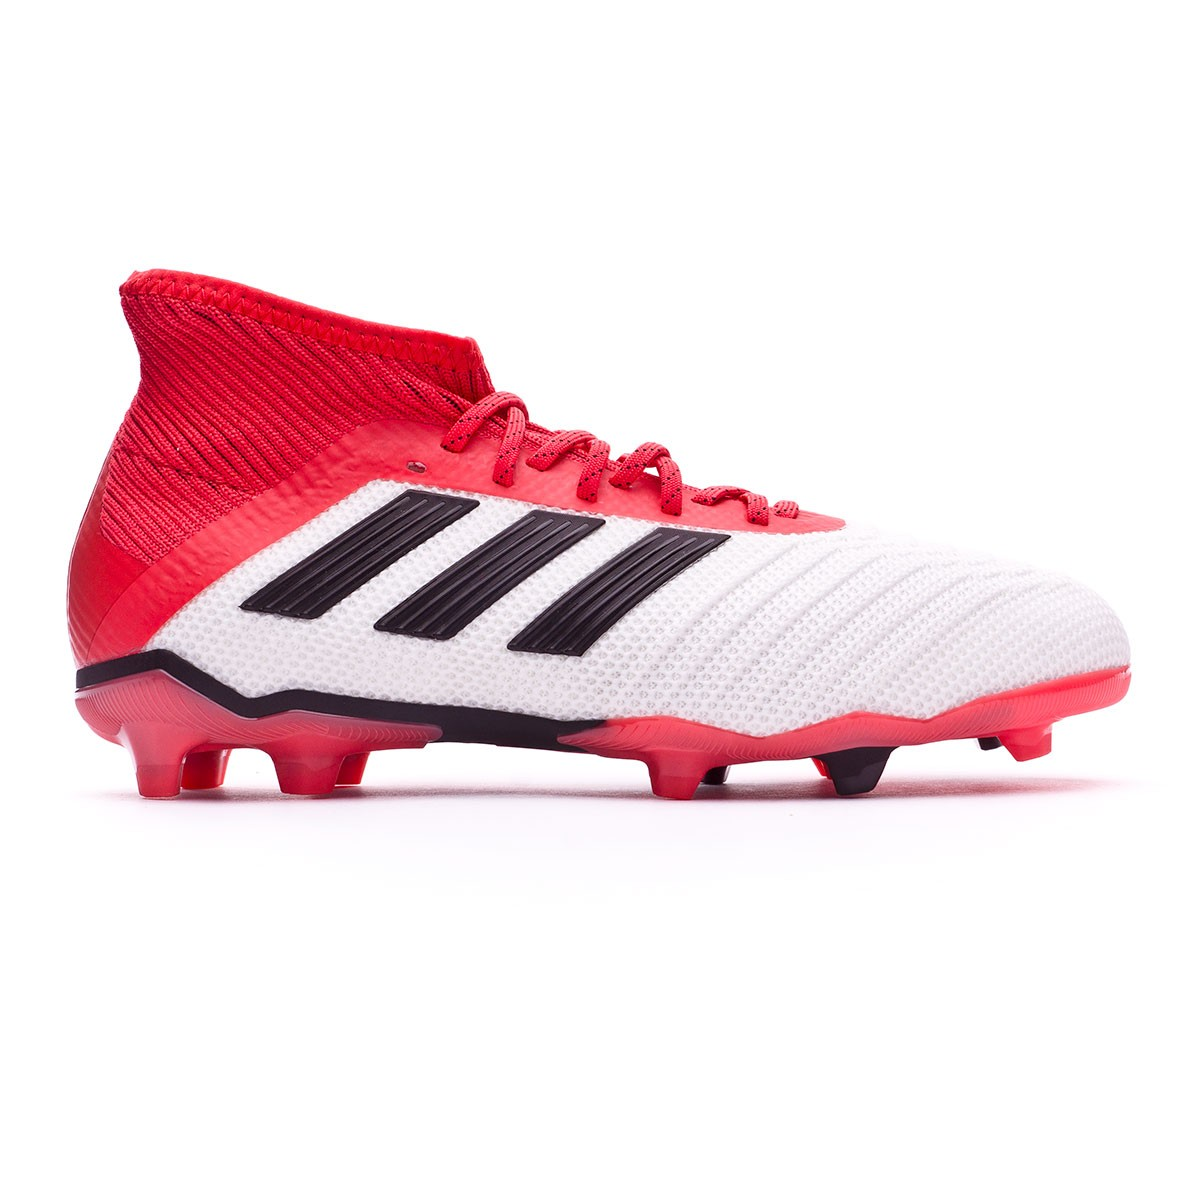 new product 8c360 f1a31 ... usa boot adidas kids predator 18.1 fg white core black real coral c1c8f  fad56